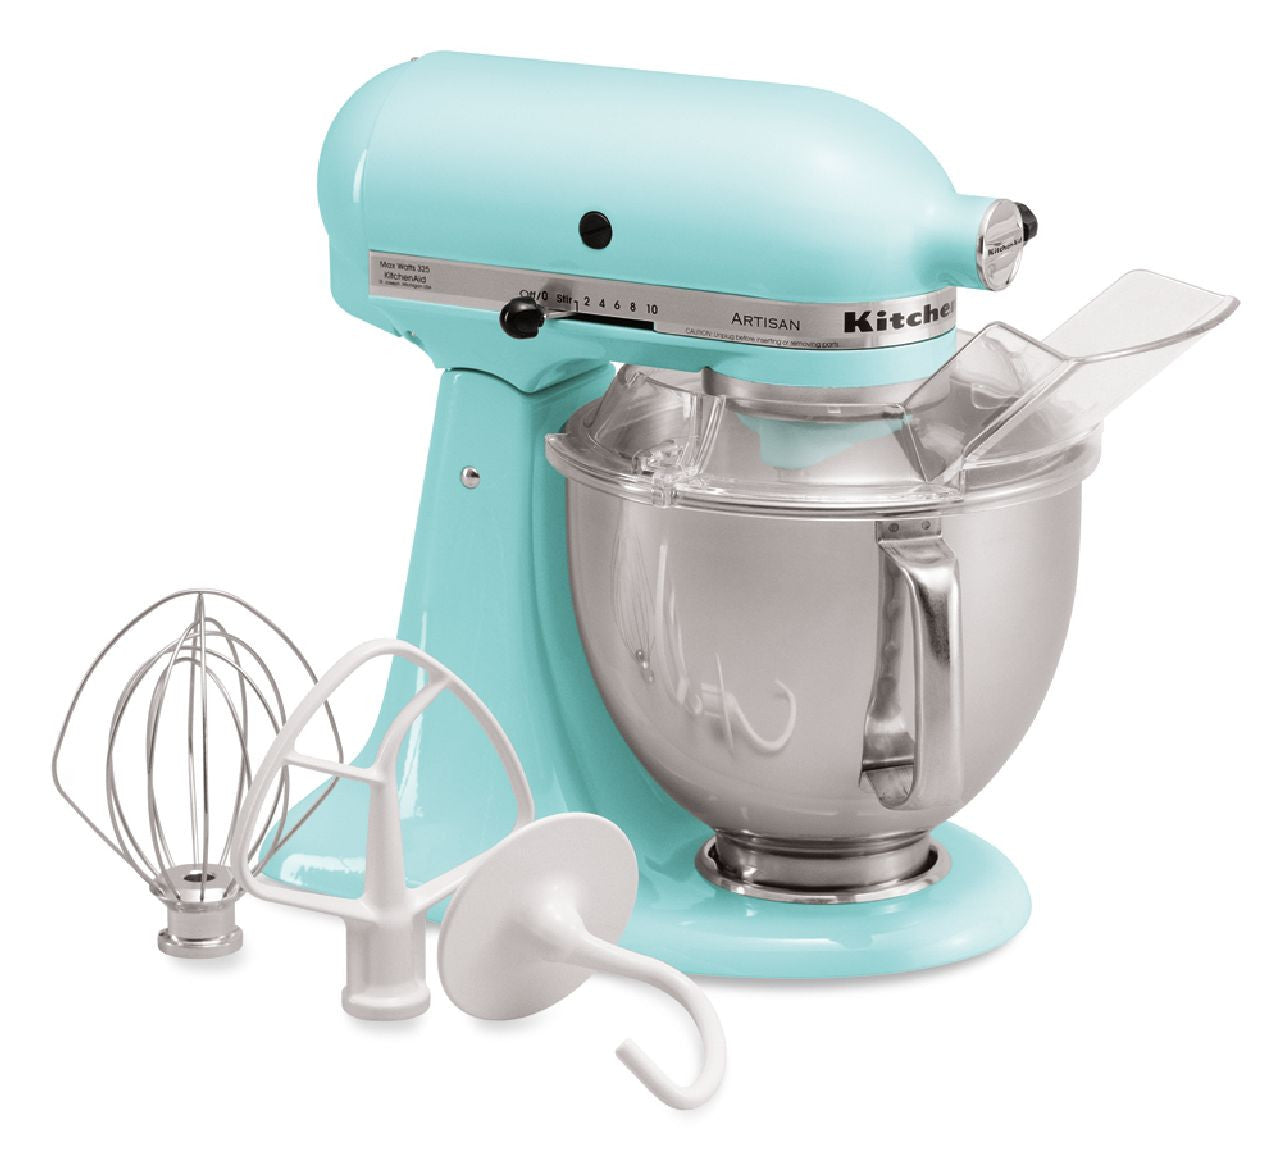 Kitchenaid 5 Qt. Artisan Series with Pouring Shield - Ice Blue KSM150PSIC